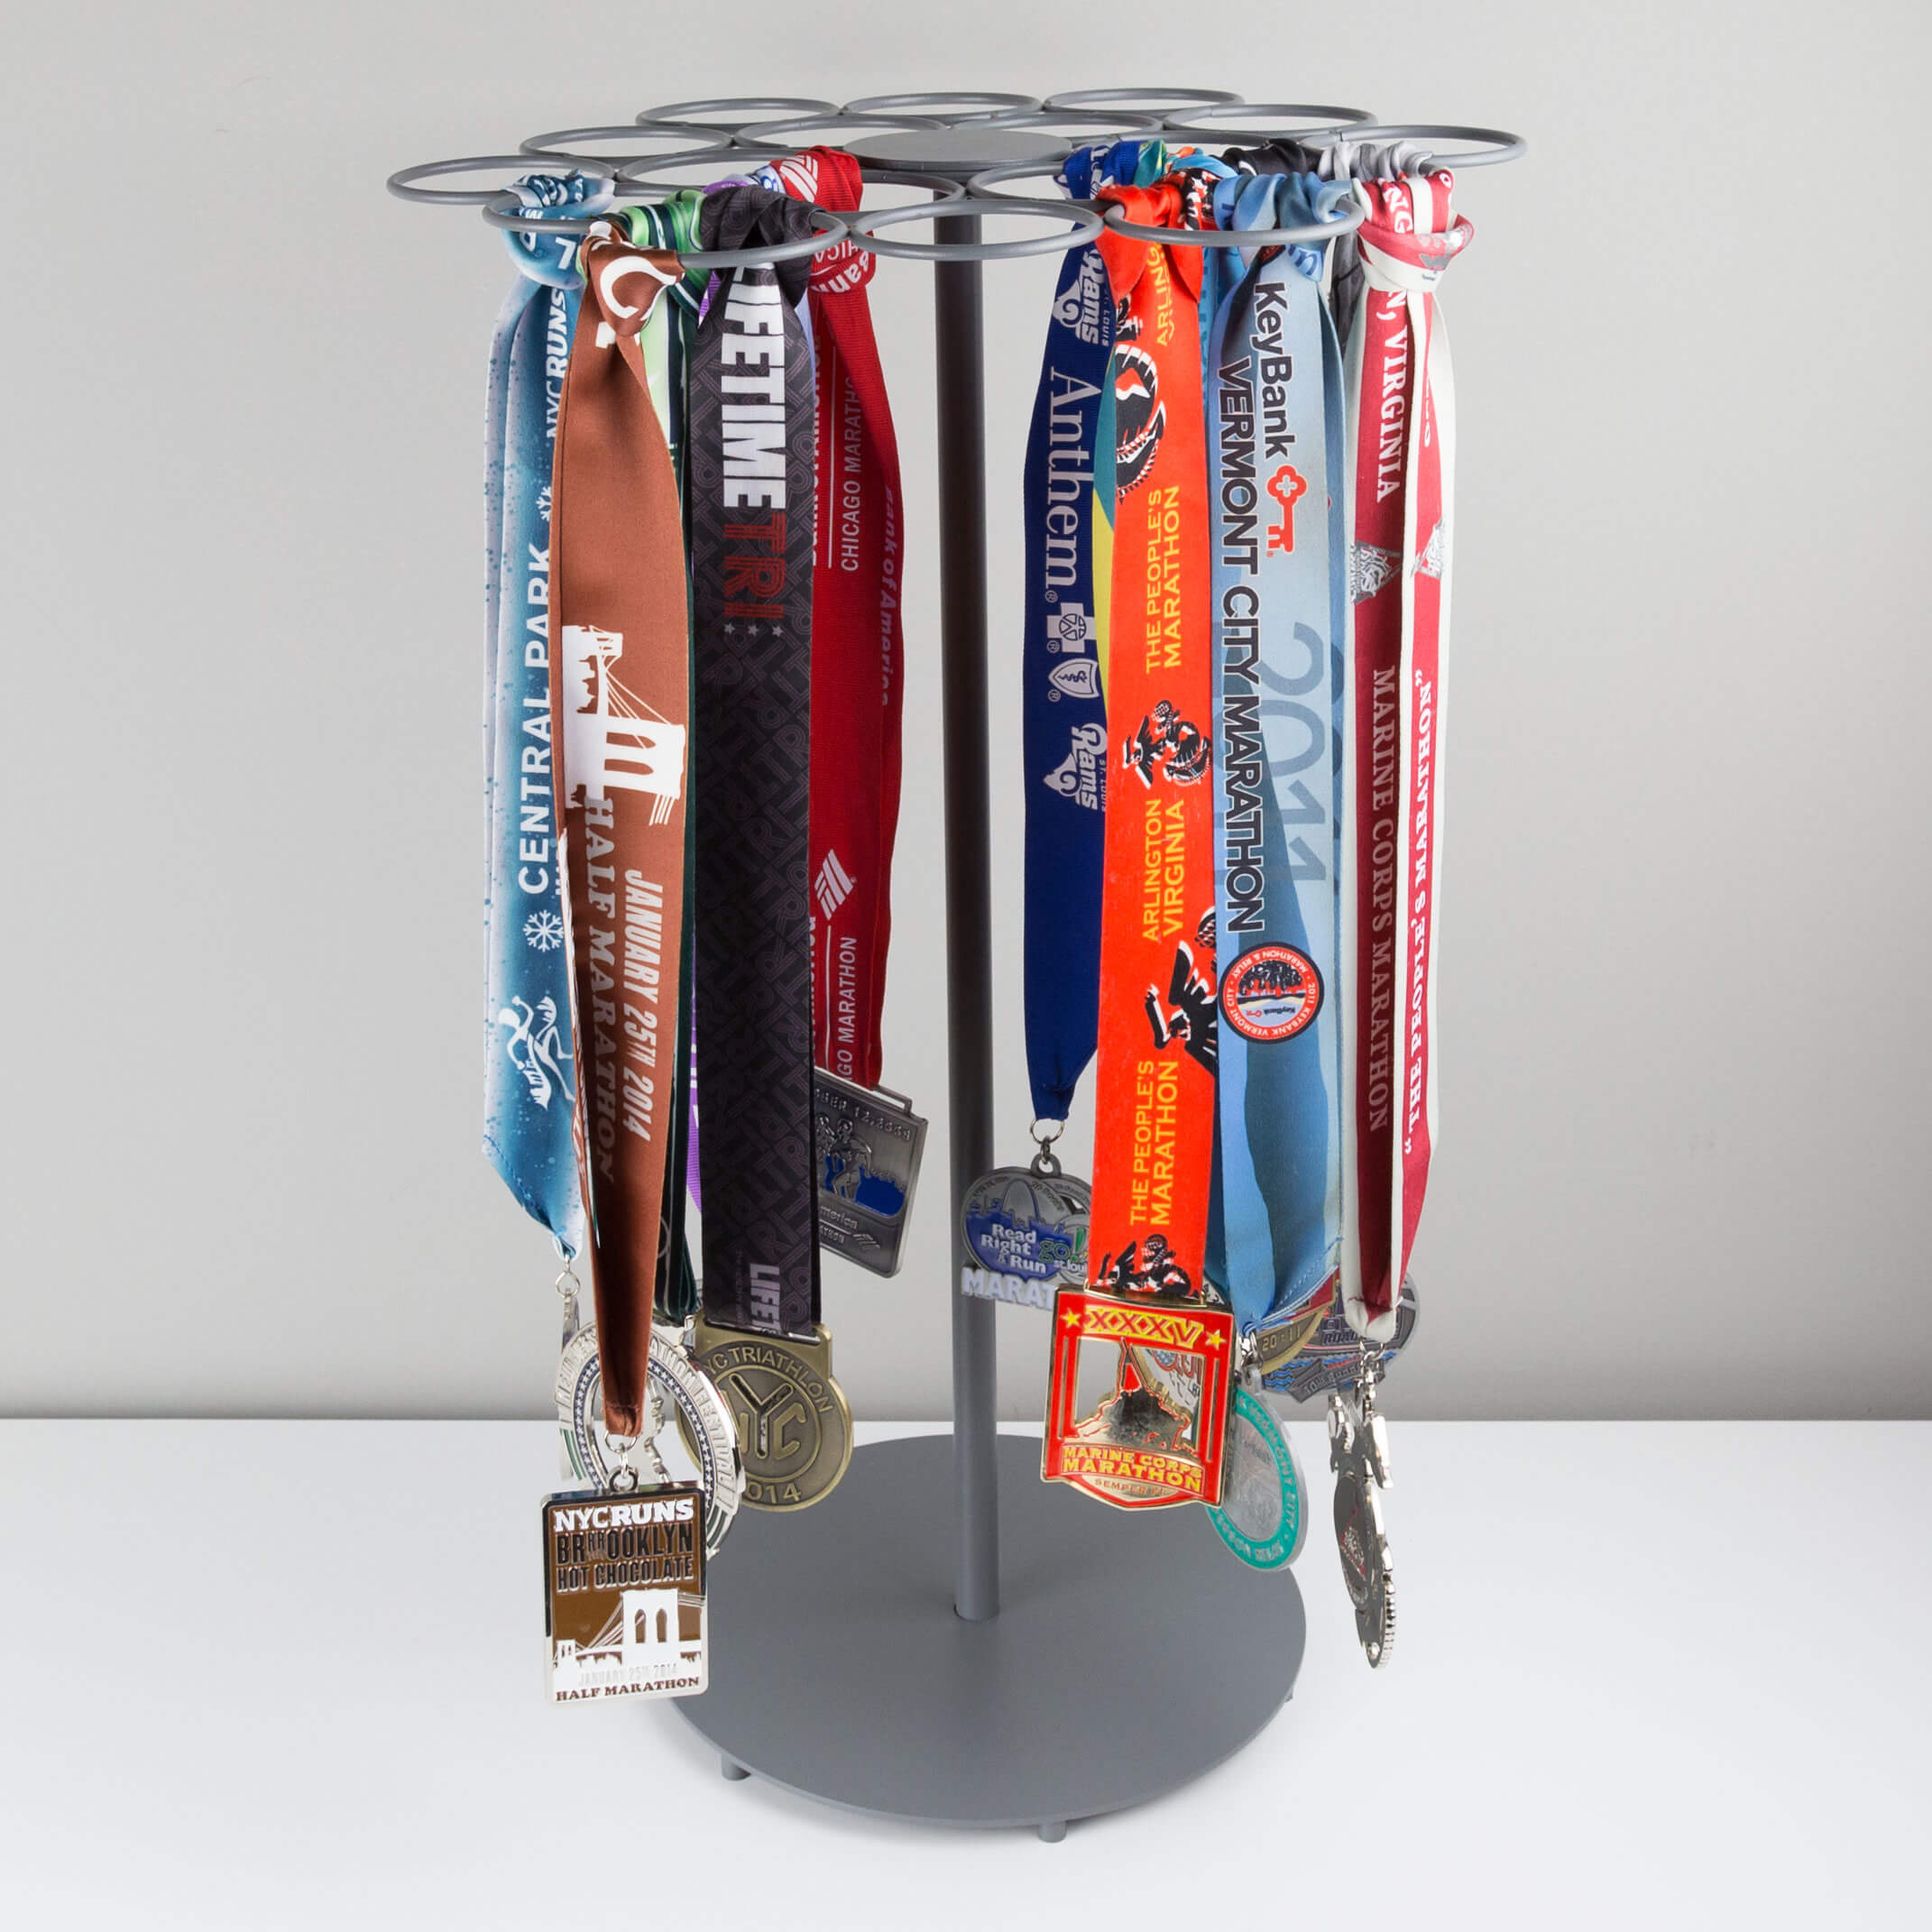 journey wanted running a to he runner future on and then in miles training my asked medal try definitely nephew one bands wear s bondi of echols shelf